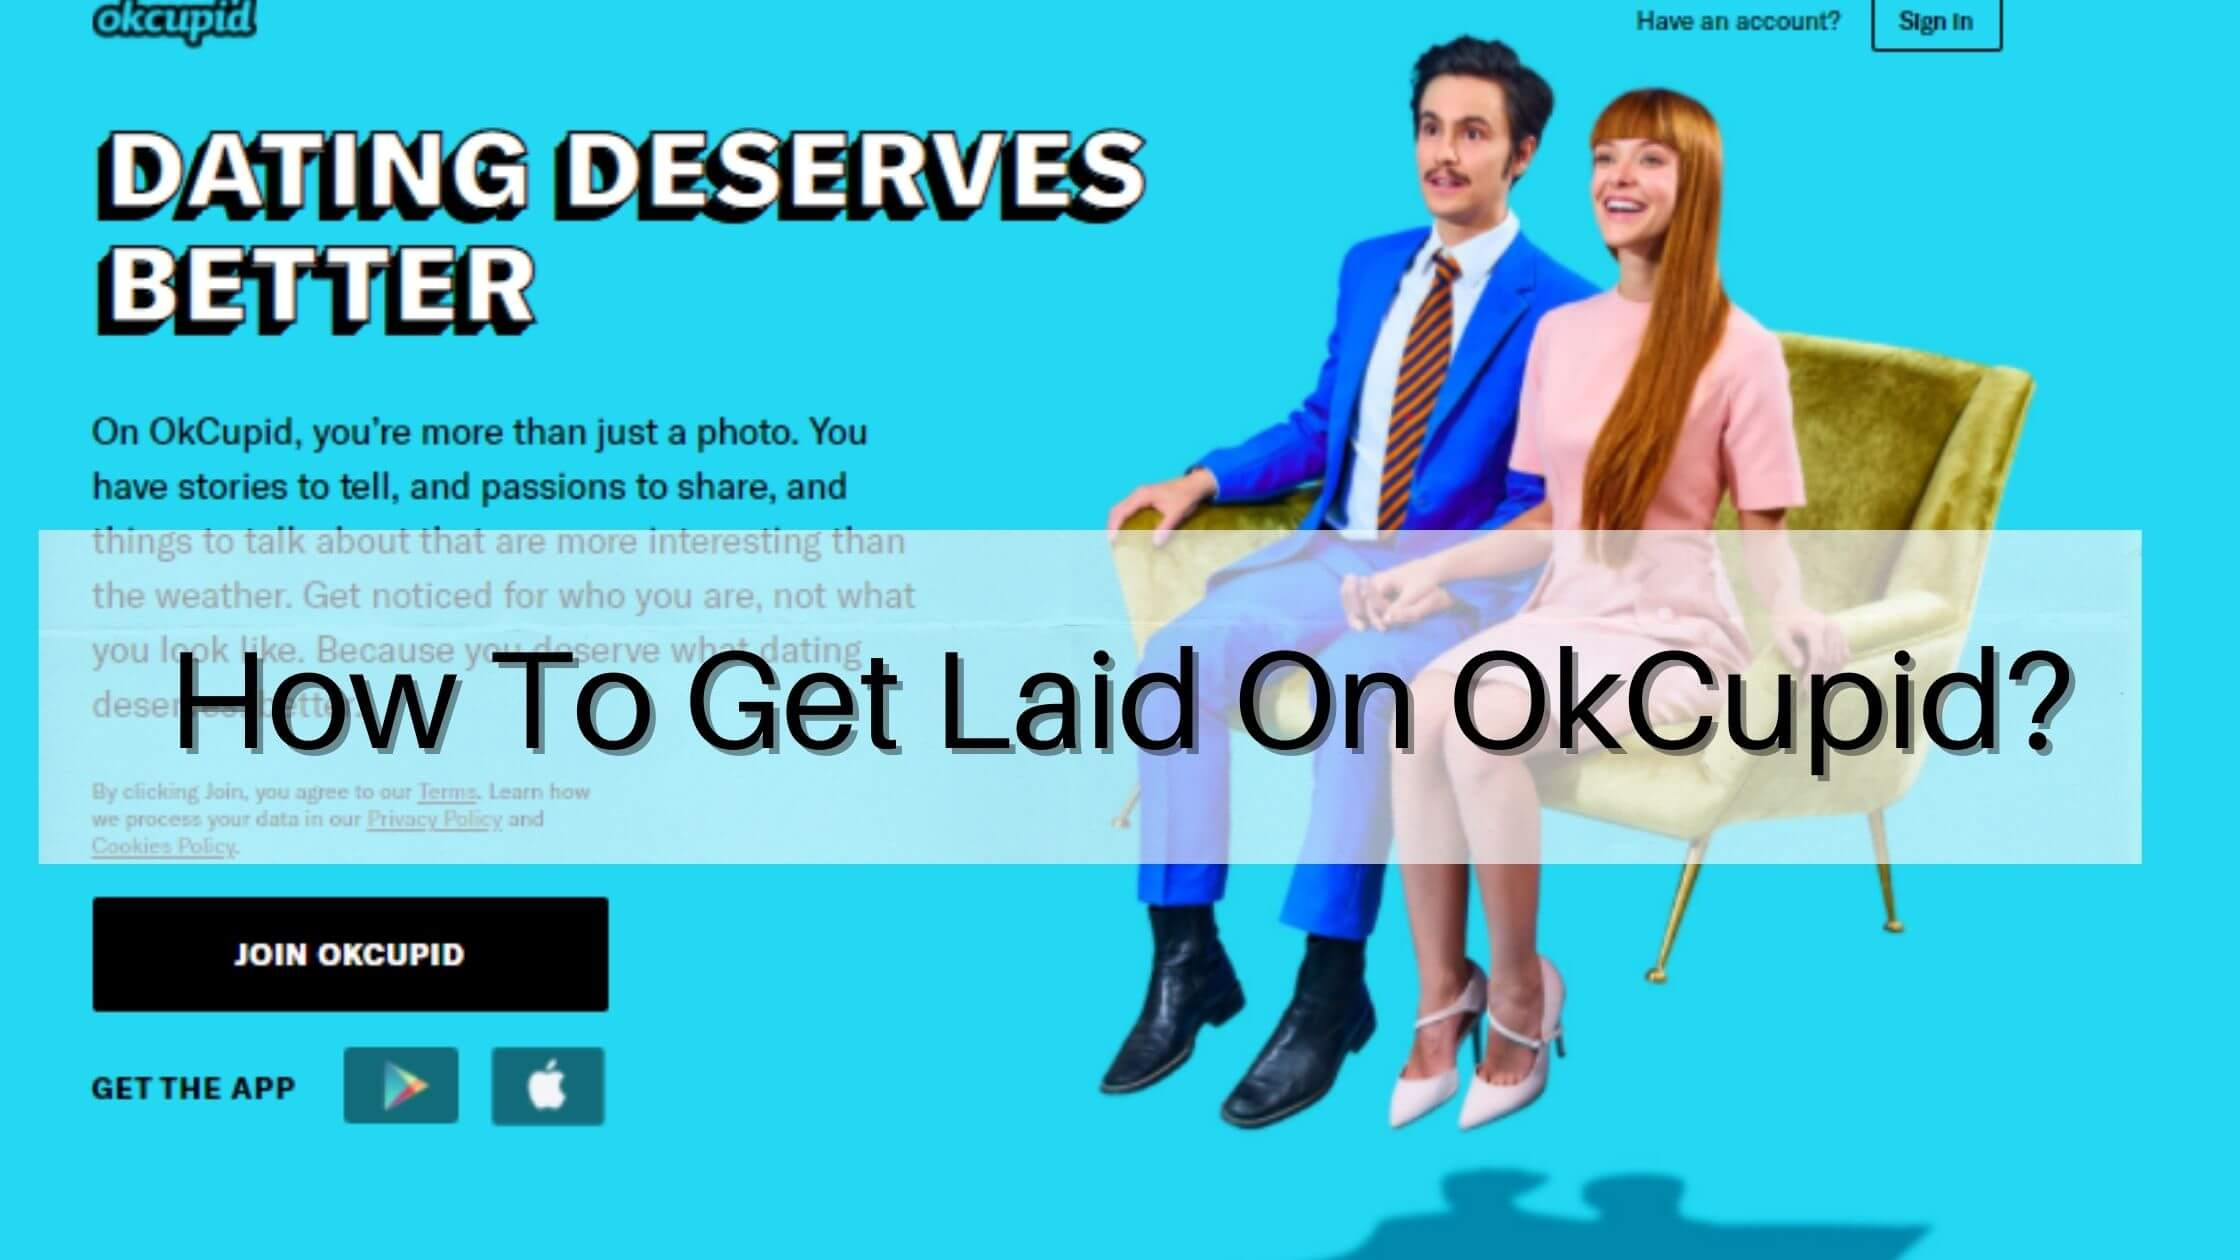 How to get laid on OkCupid?